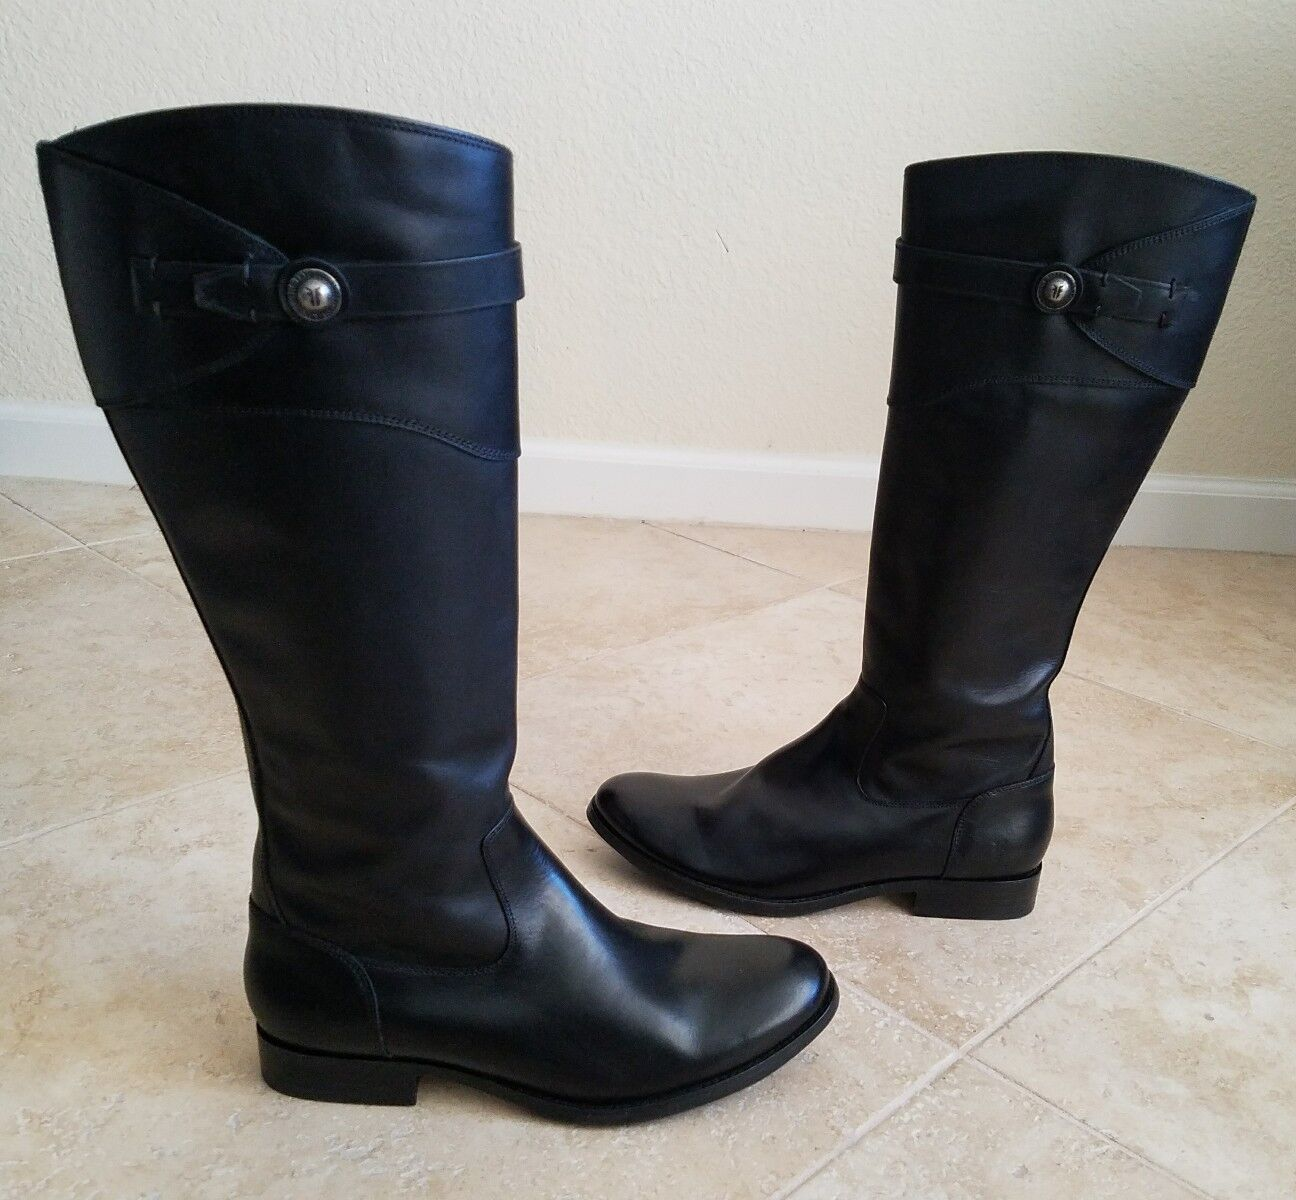 NEW FRYE MOLLY MOLLY MOLLY BUTTON TALL RIDING BOOT BLACK 9.5 SIDE ZIP bcb64d